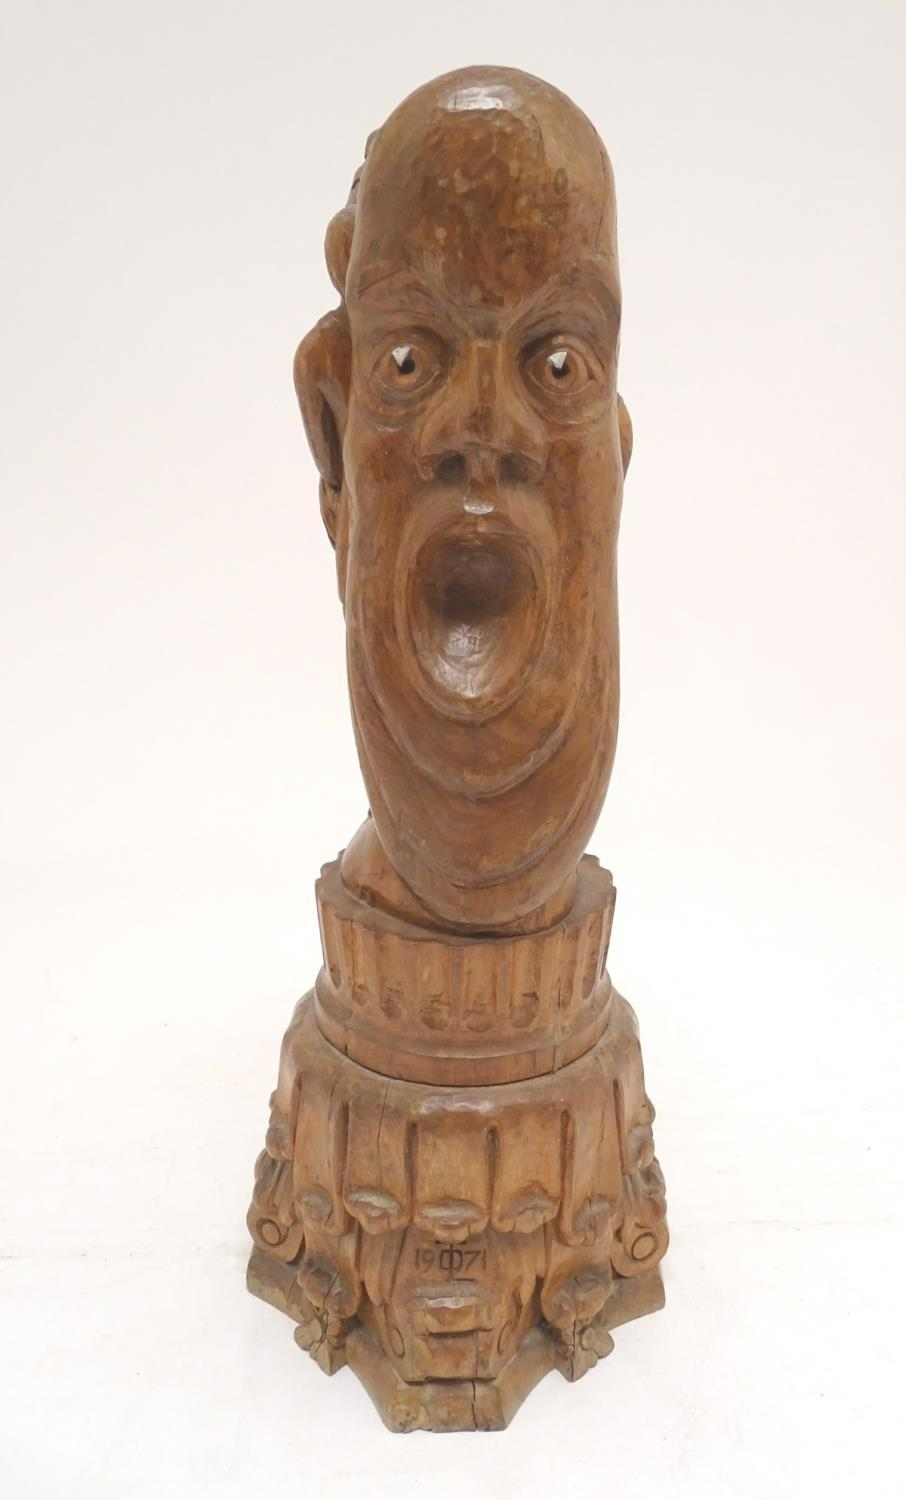 A 20thC carved wooden sculpture titled Tragic Muse to base, monogrammed TD and dated 1971 to side. - Image 8 of 17